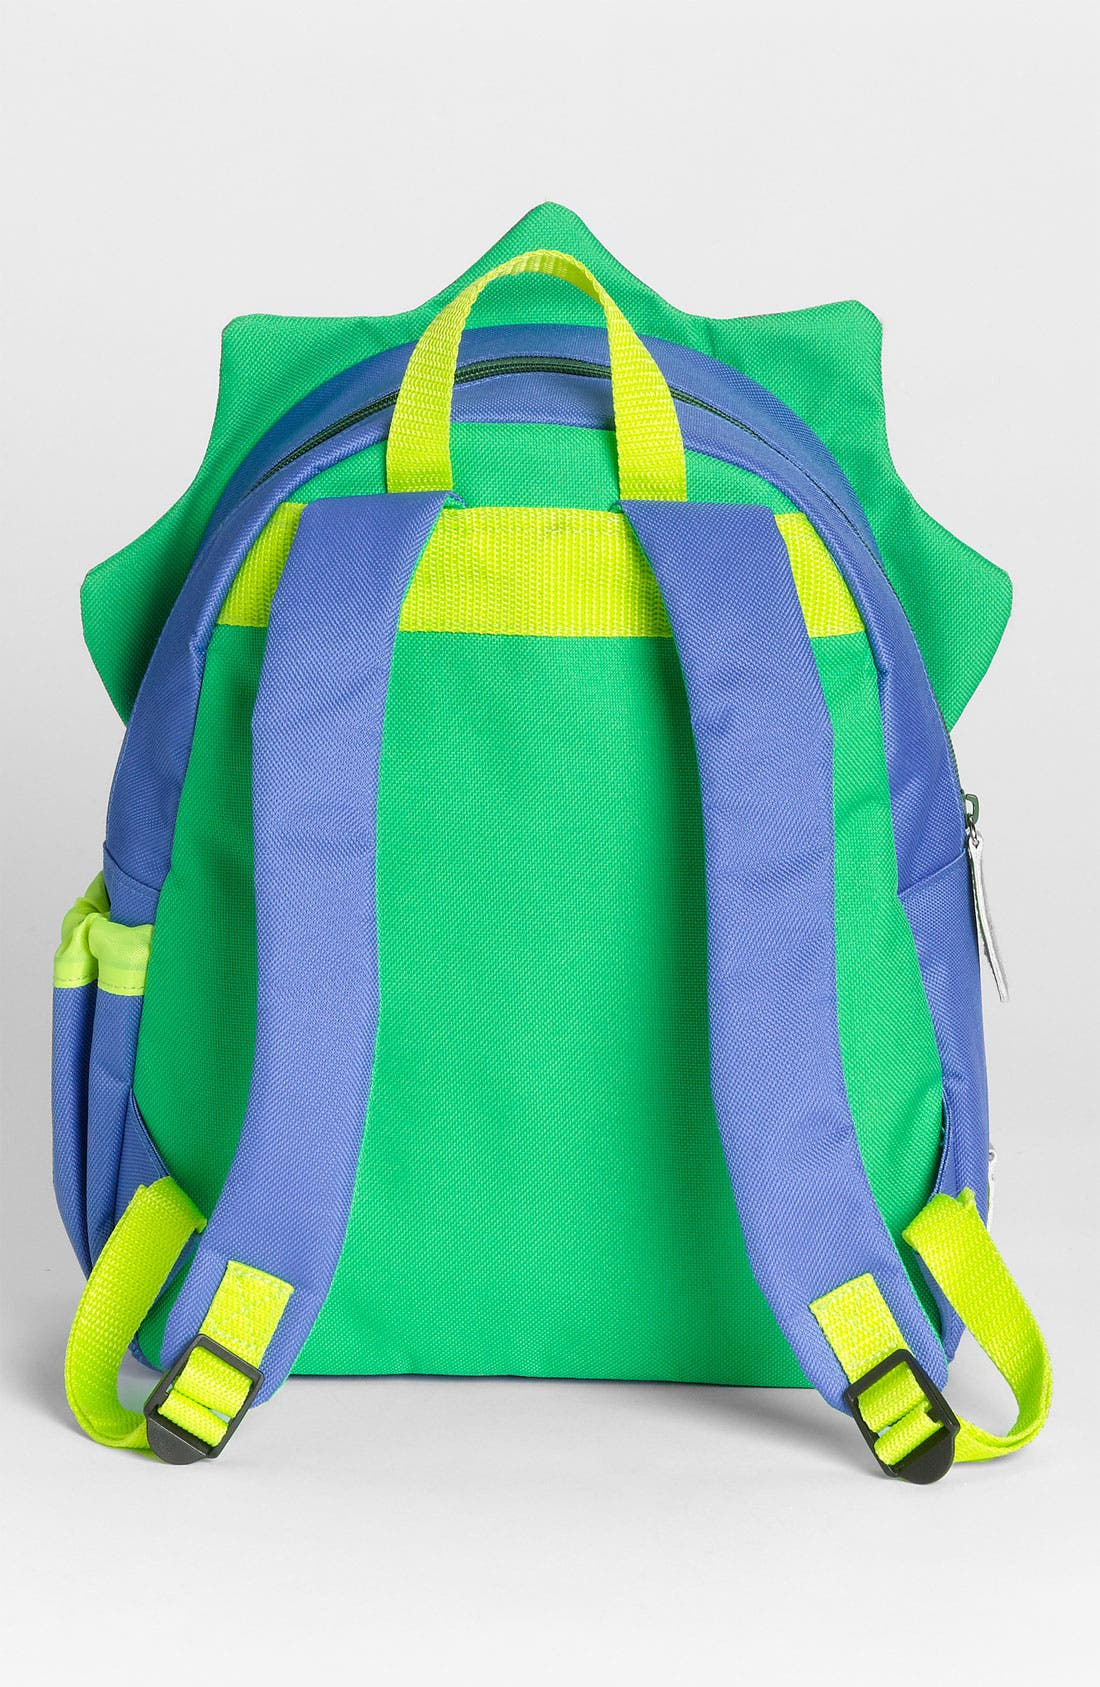 Zoo Pack Backpack,                             Alternate thumbnail 5, color,                             Green/ Blue